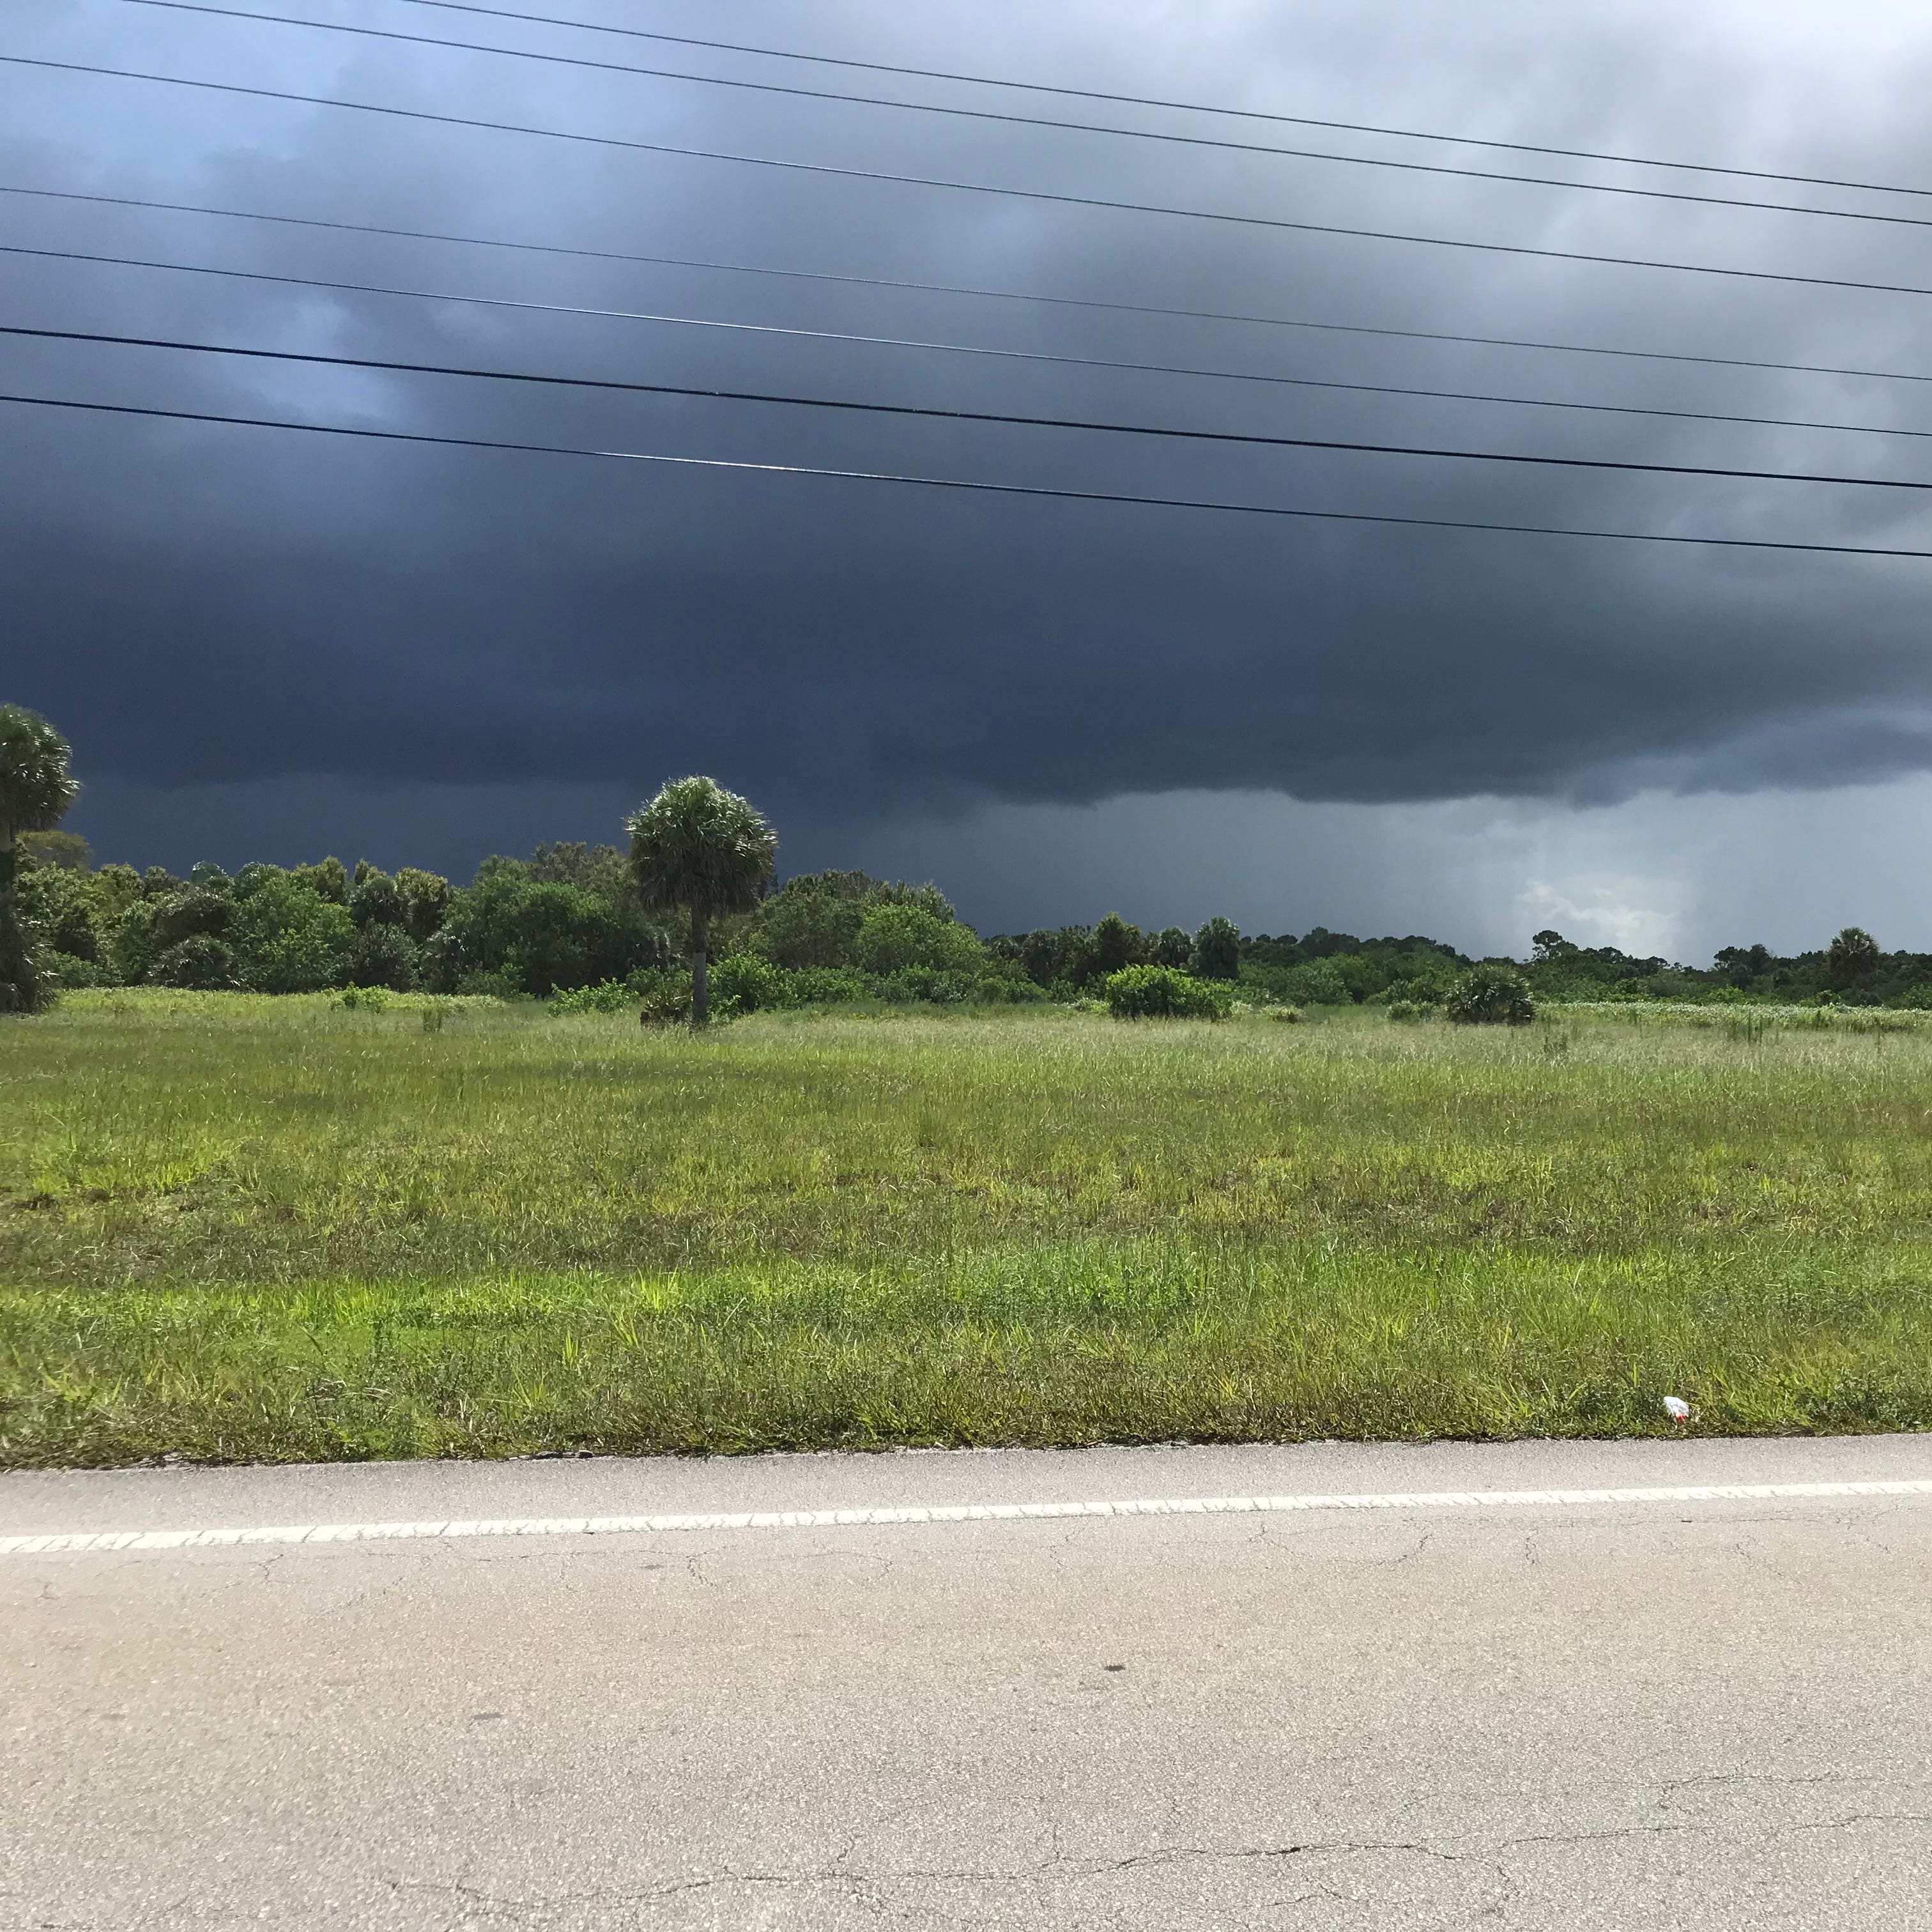 Showers later today could bring torrential downpours, lightning